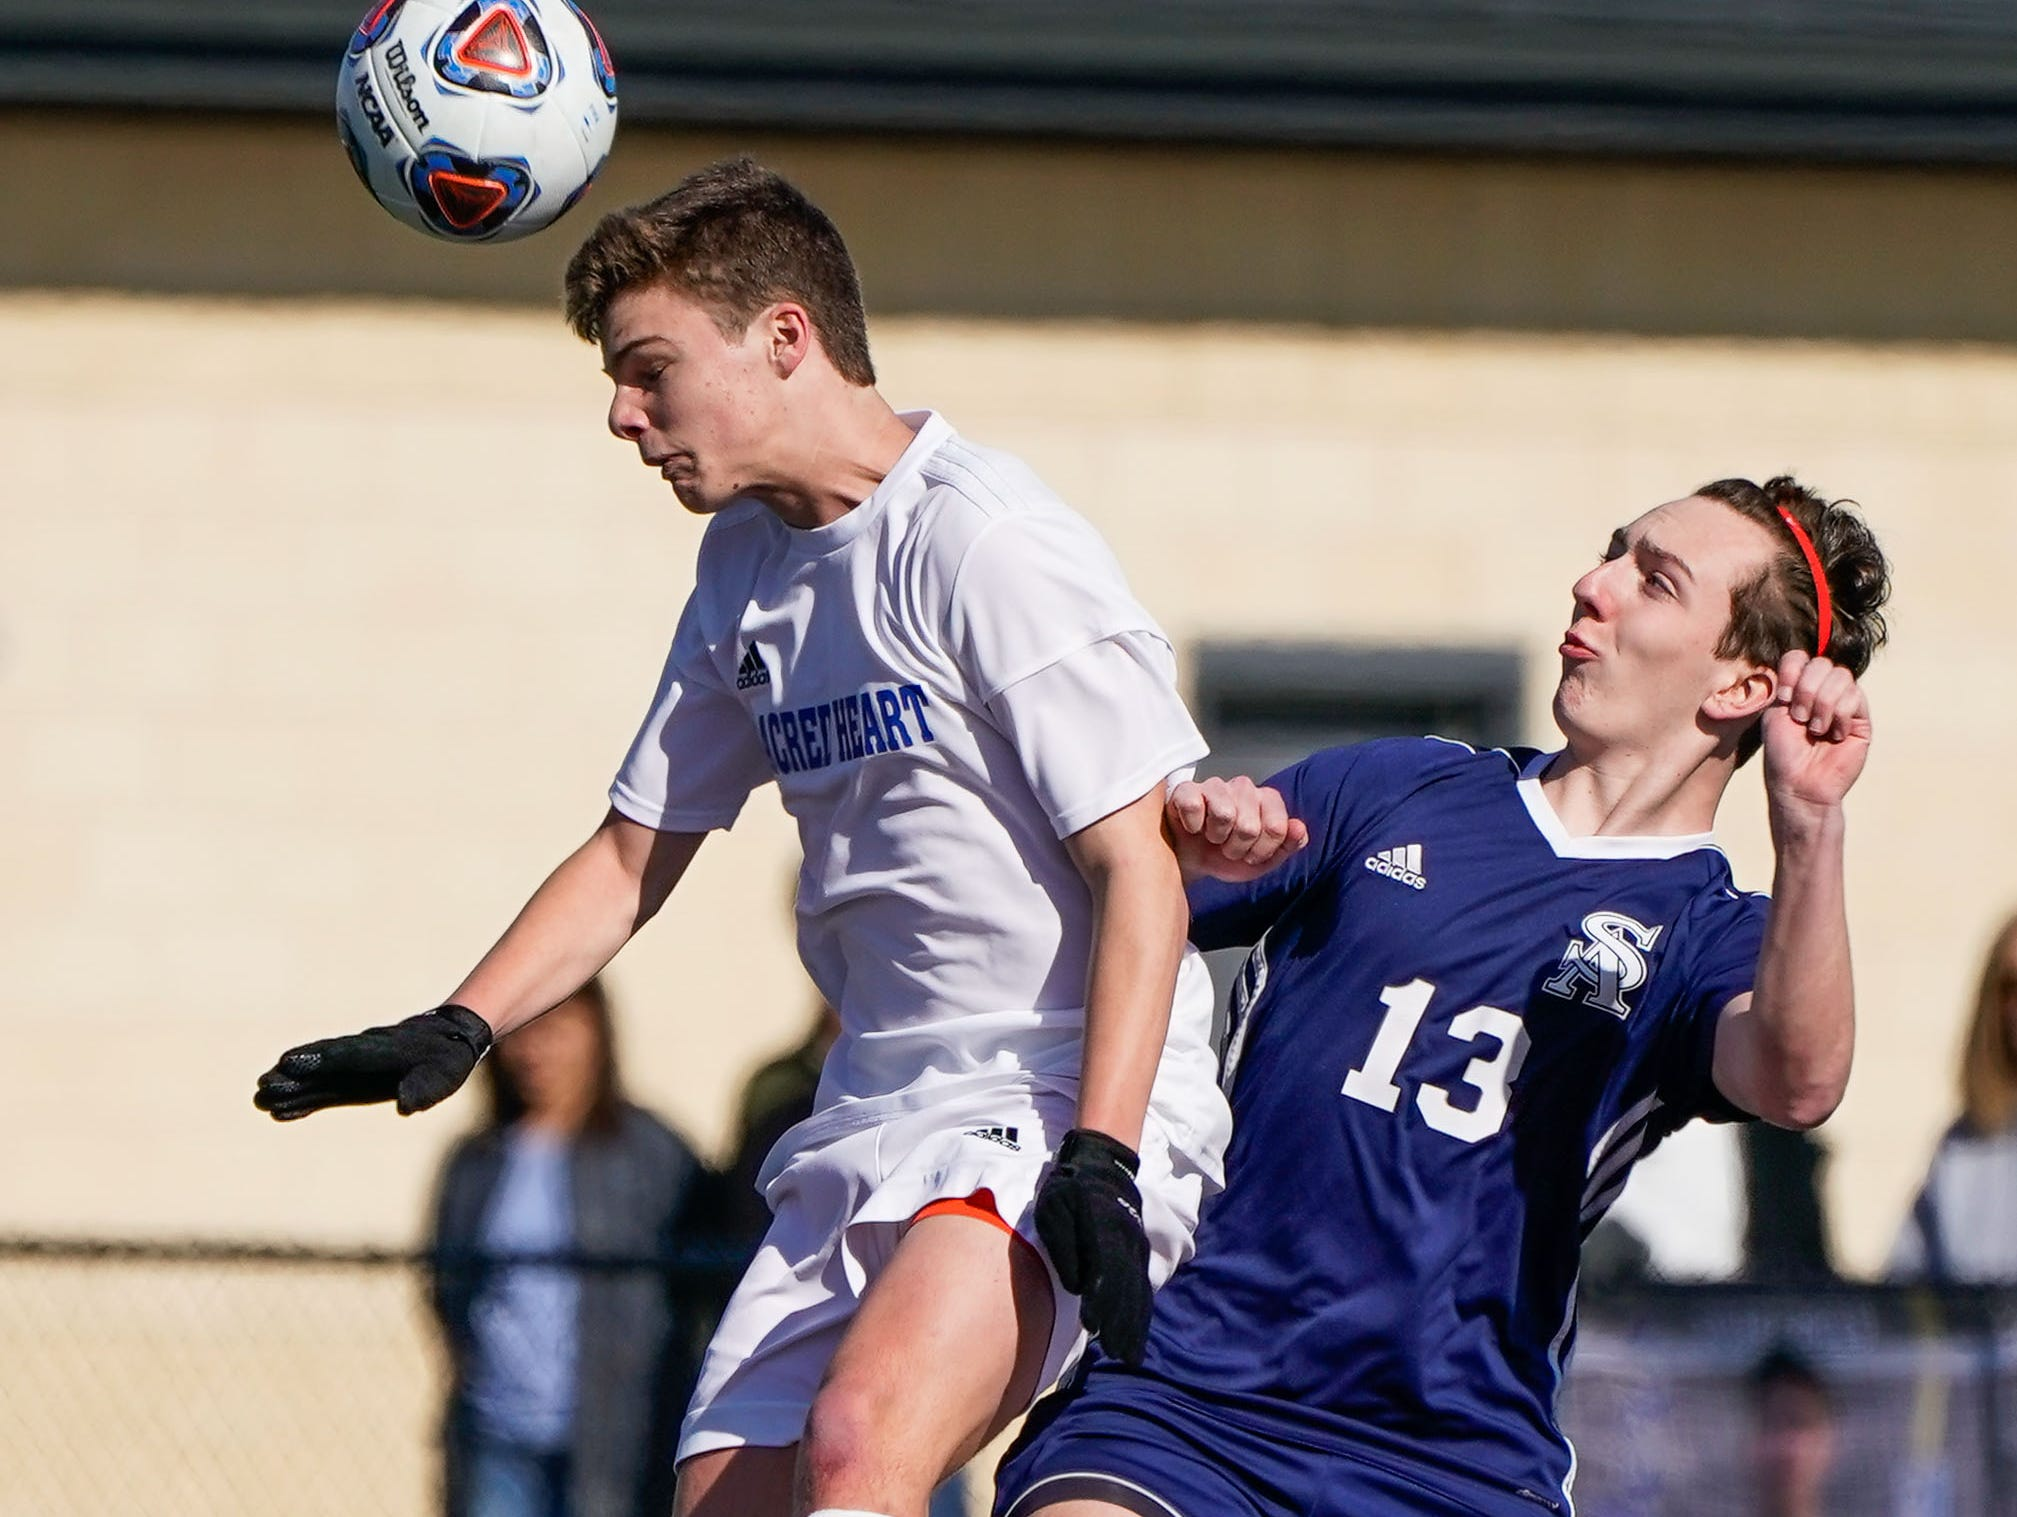 St. Andrew's John Mychal Warren (13) and Sacred Heart's Bennett Gibson (28) battle for a header during the MHSAA 1A,2A,3A  Boys Soccer Championships held at Brandon High School in Brandon, MS, Saturday February 9, 2019.(Bob Smith-For The Clarion Ledger)